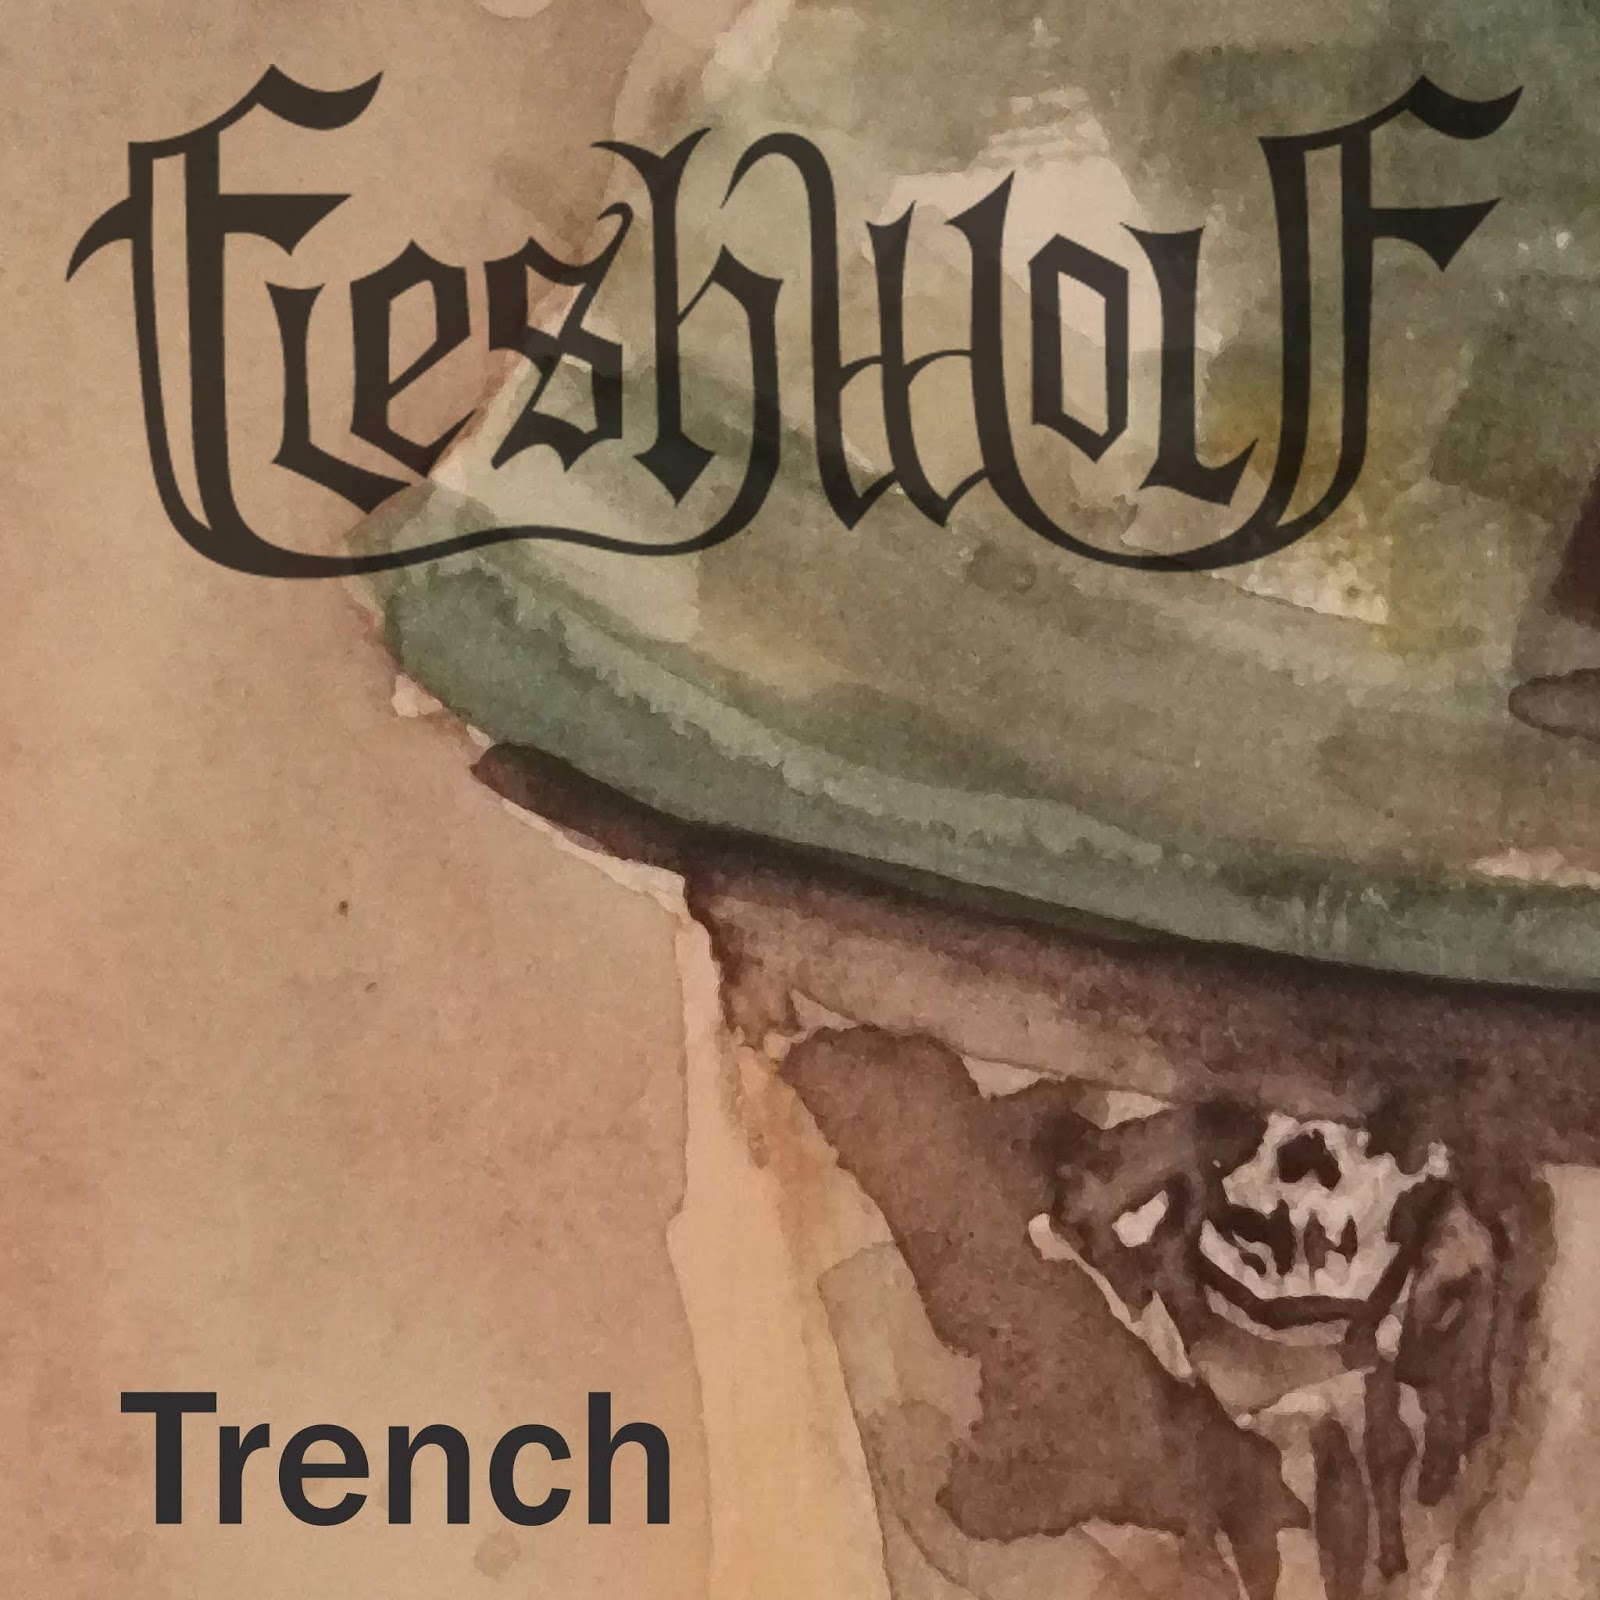 Fleshwolf - Trench - Cover